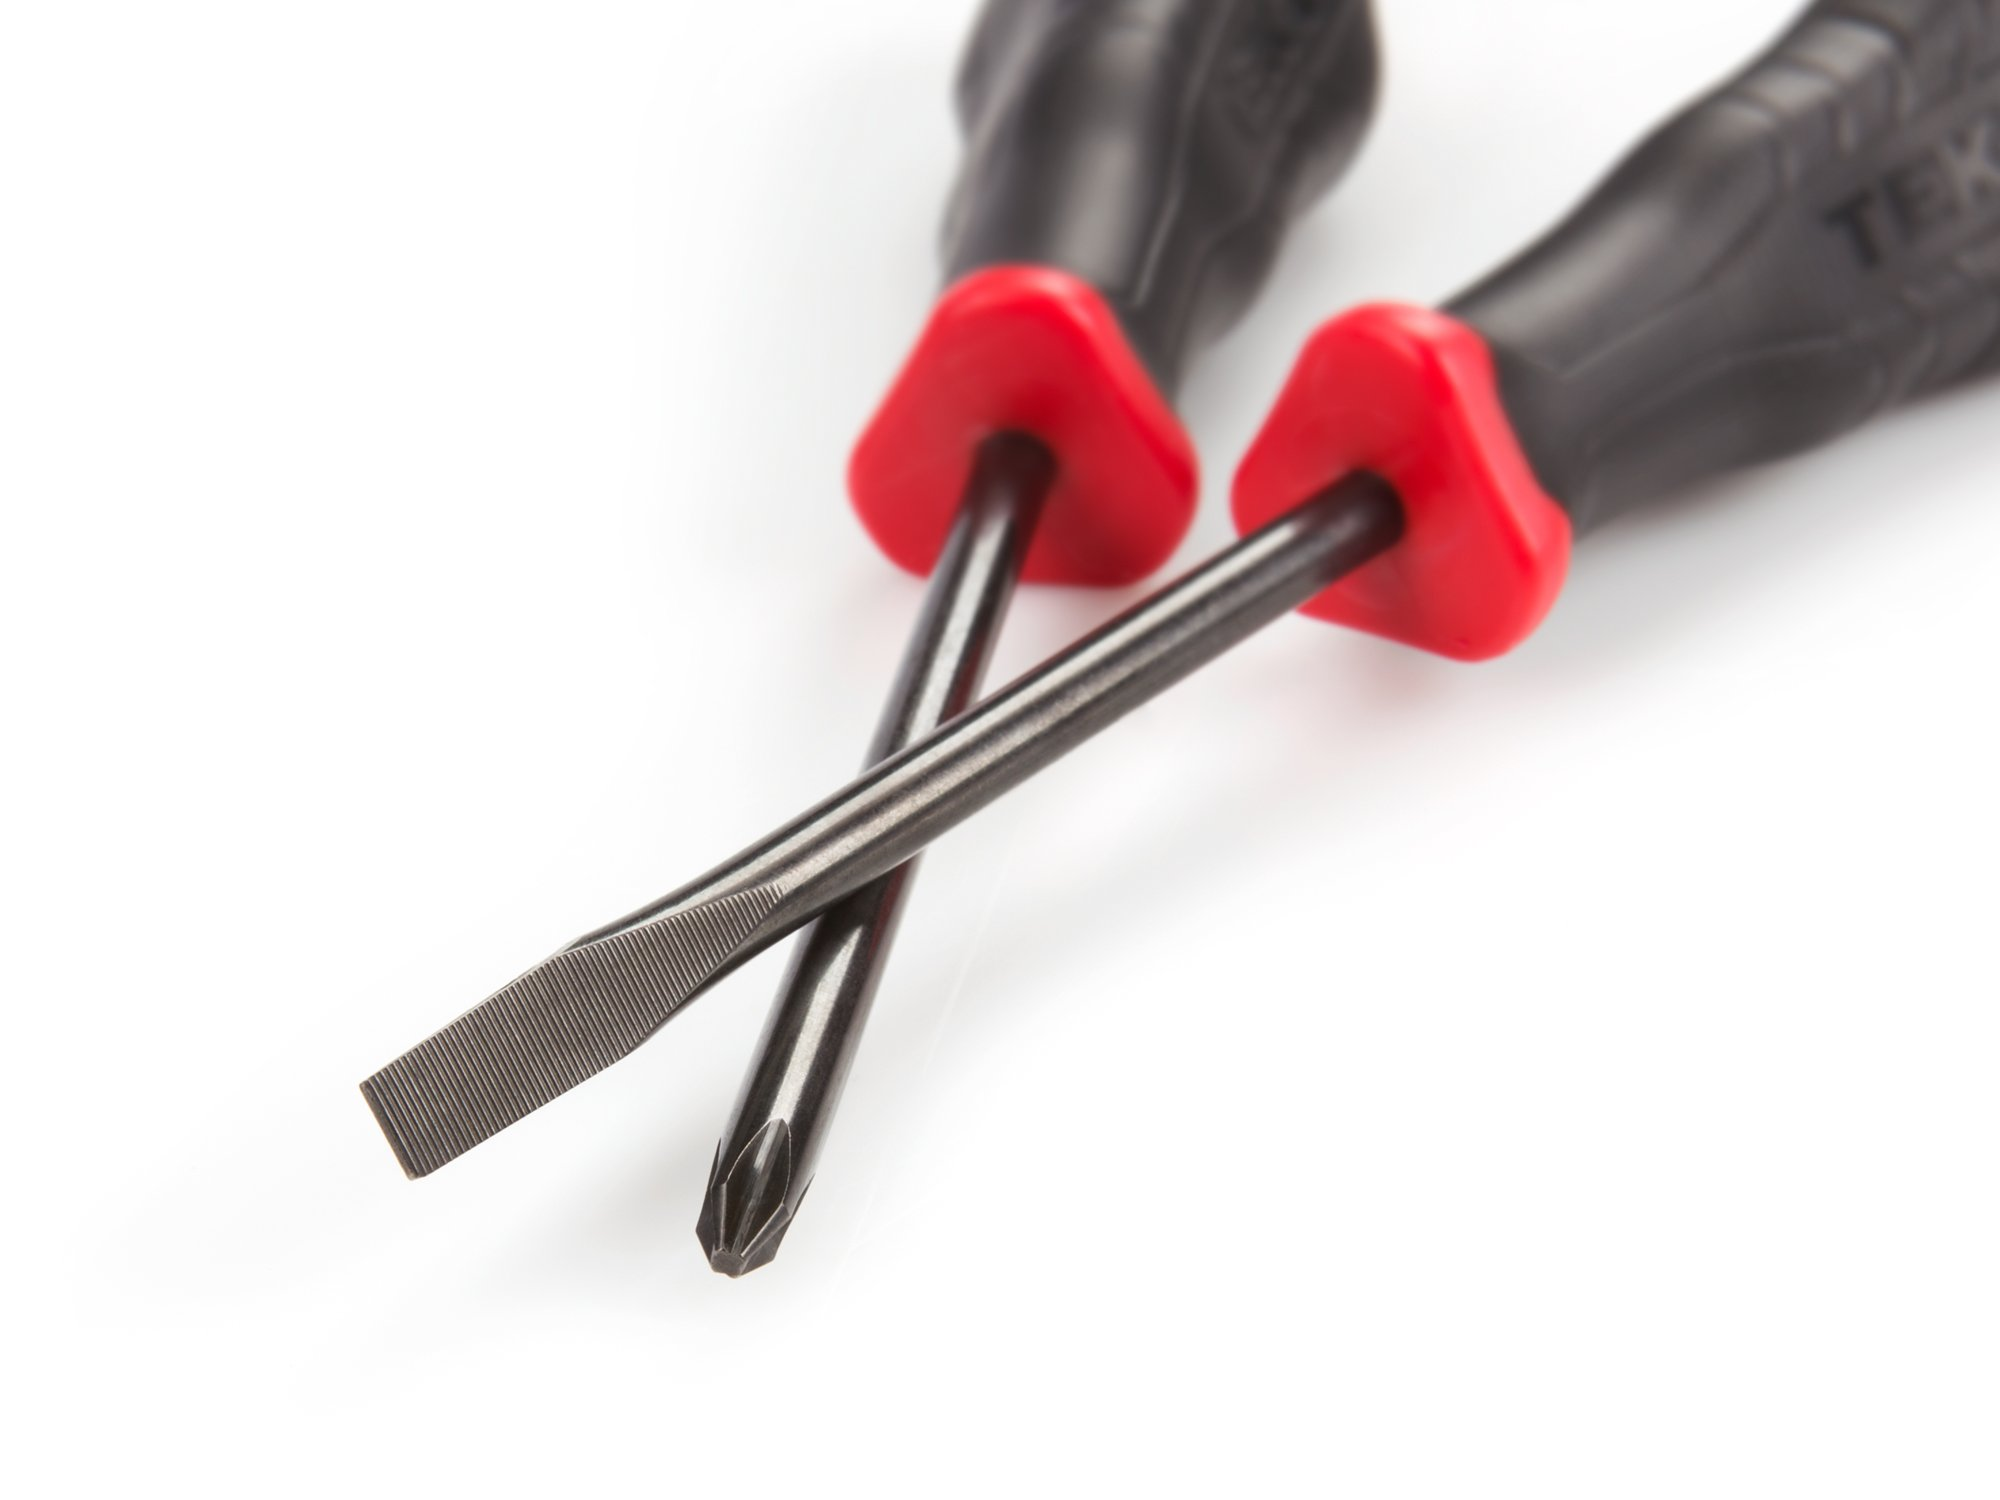 TEKTON 26759 Slotted and Phillips Screwdriver Set, 16-Piece by TEKTON (Image #9)